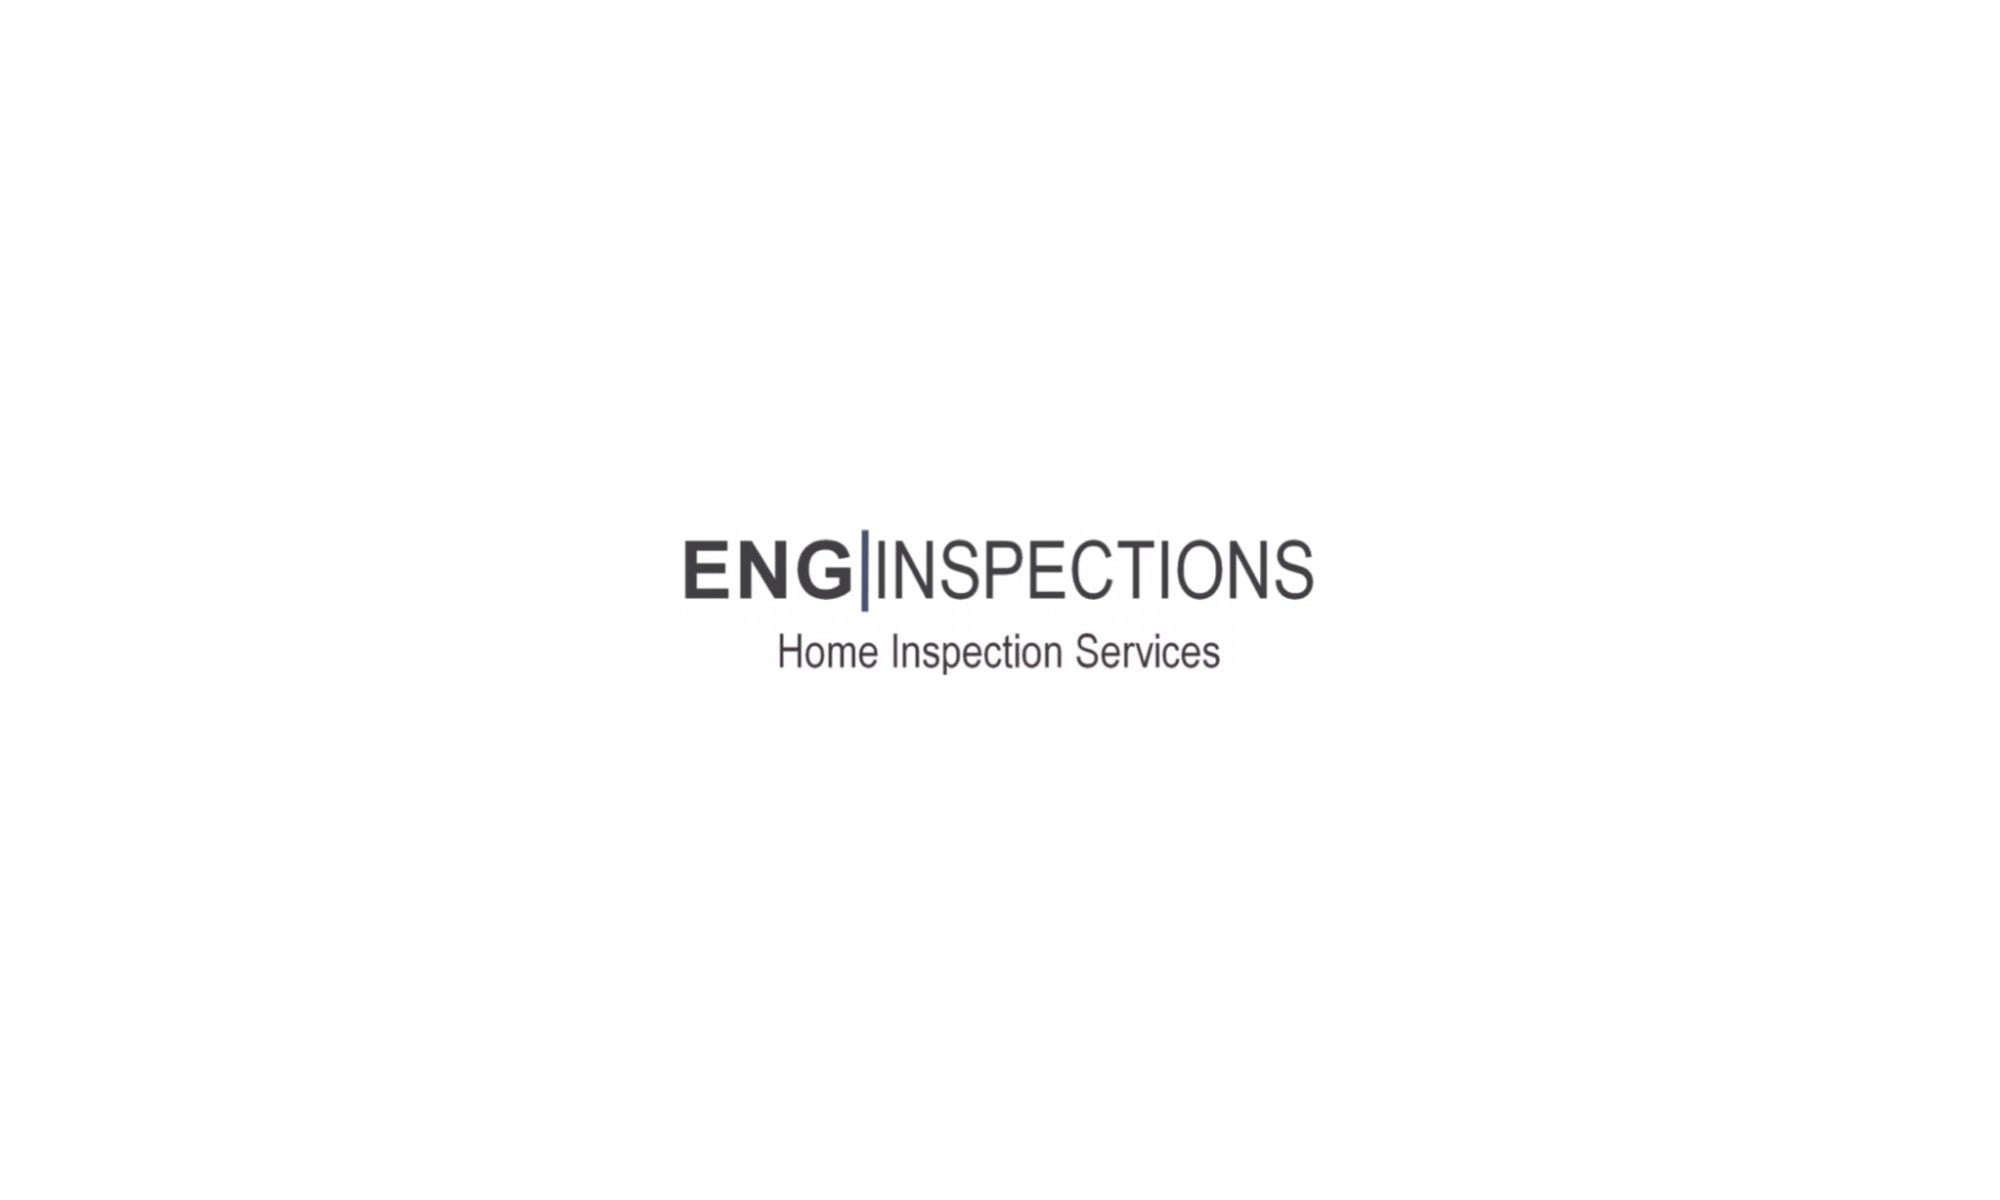 ENG Inspections Inc - Home Inspection Services